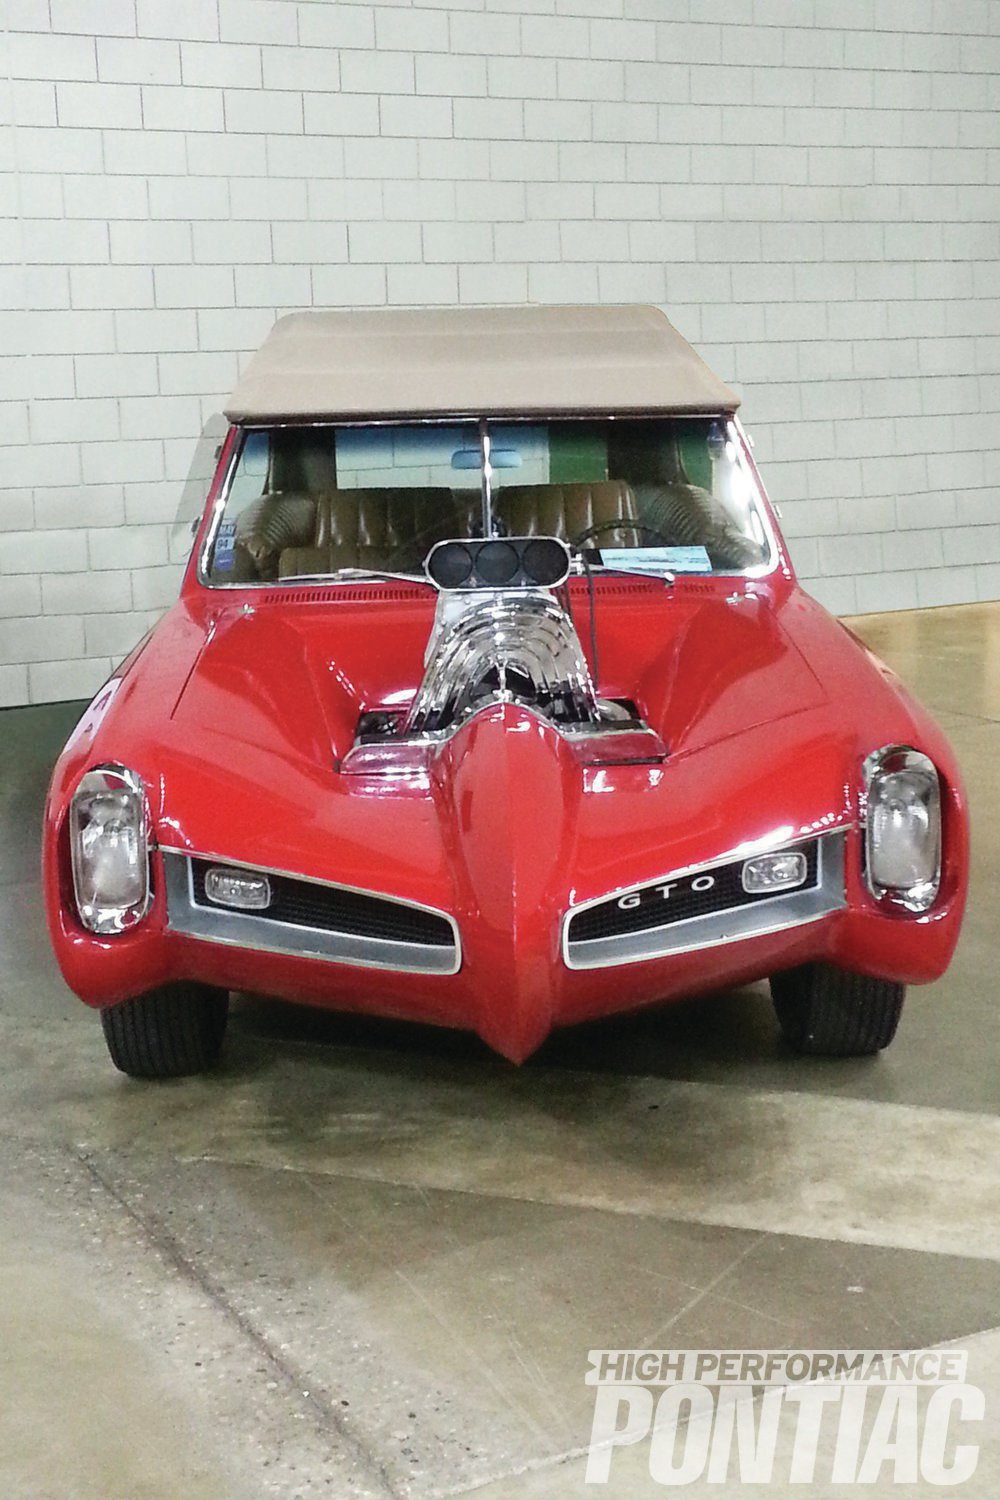 This dead-on front shot gives an interesting view of the exaggerated proportions of the customized GTO. Oddly enough, despite the heavy modifications, the stock '66 GTO grilles are unaltered.